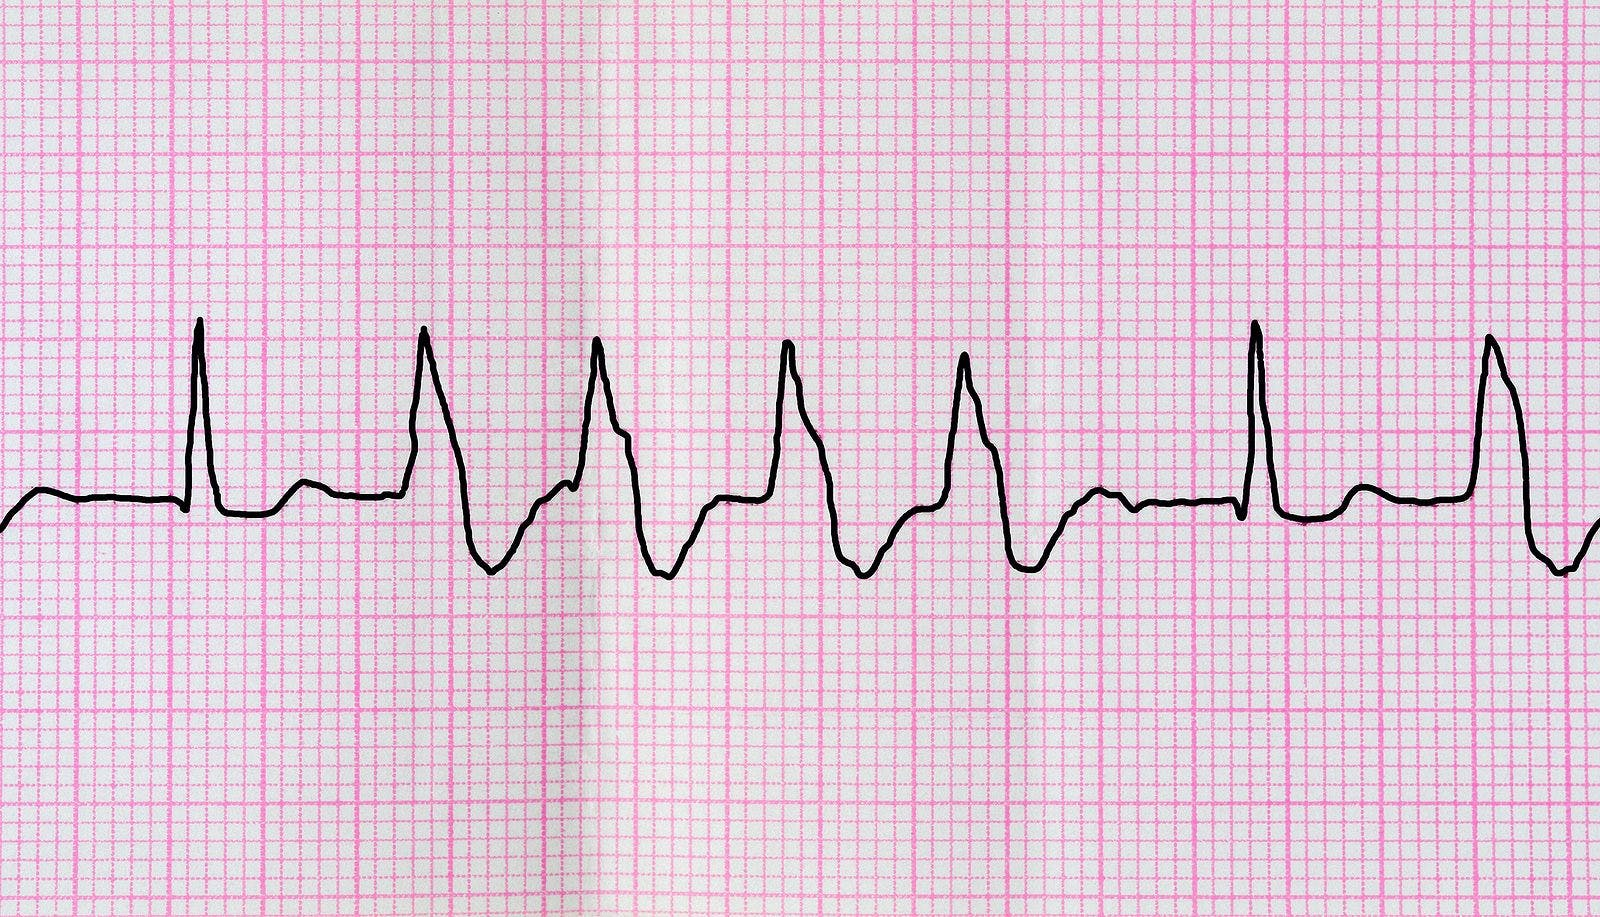 Emergency Cardiology. Tape ECG with group ventricular extrasystoles